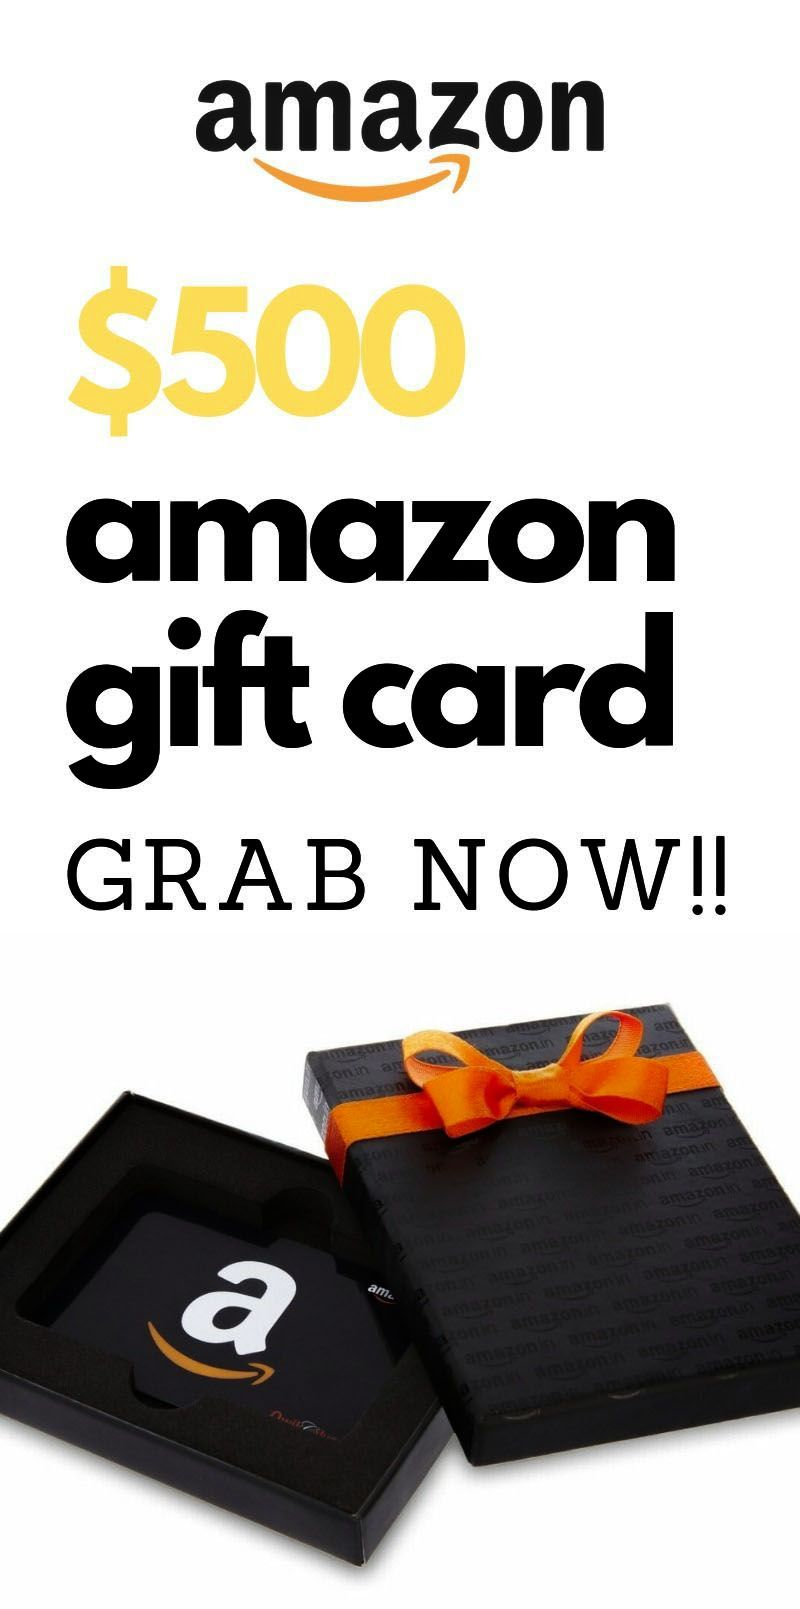 Get A 100 Amazon Gift Card Free It S Easy To Get Working 100 Amazon Gift Card Free Amazon Gift Cards Amazon Gifts